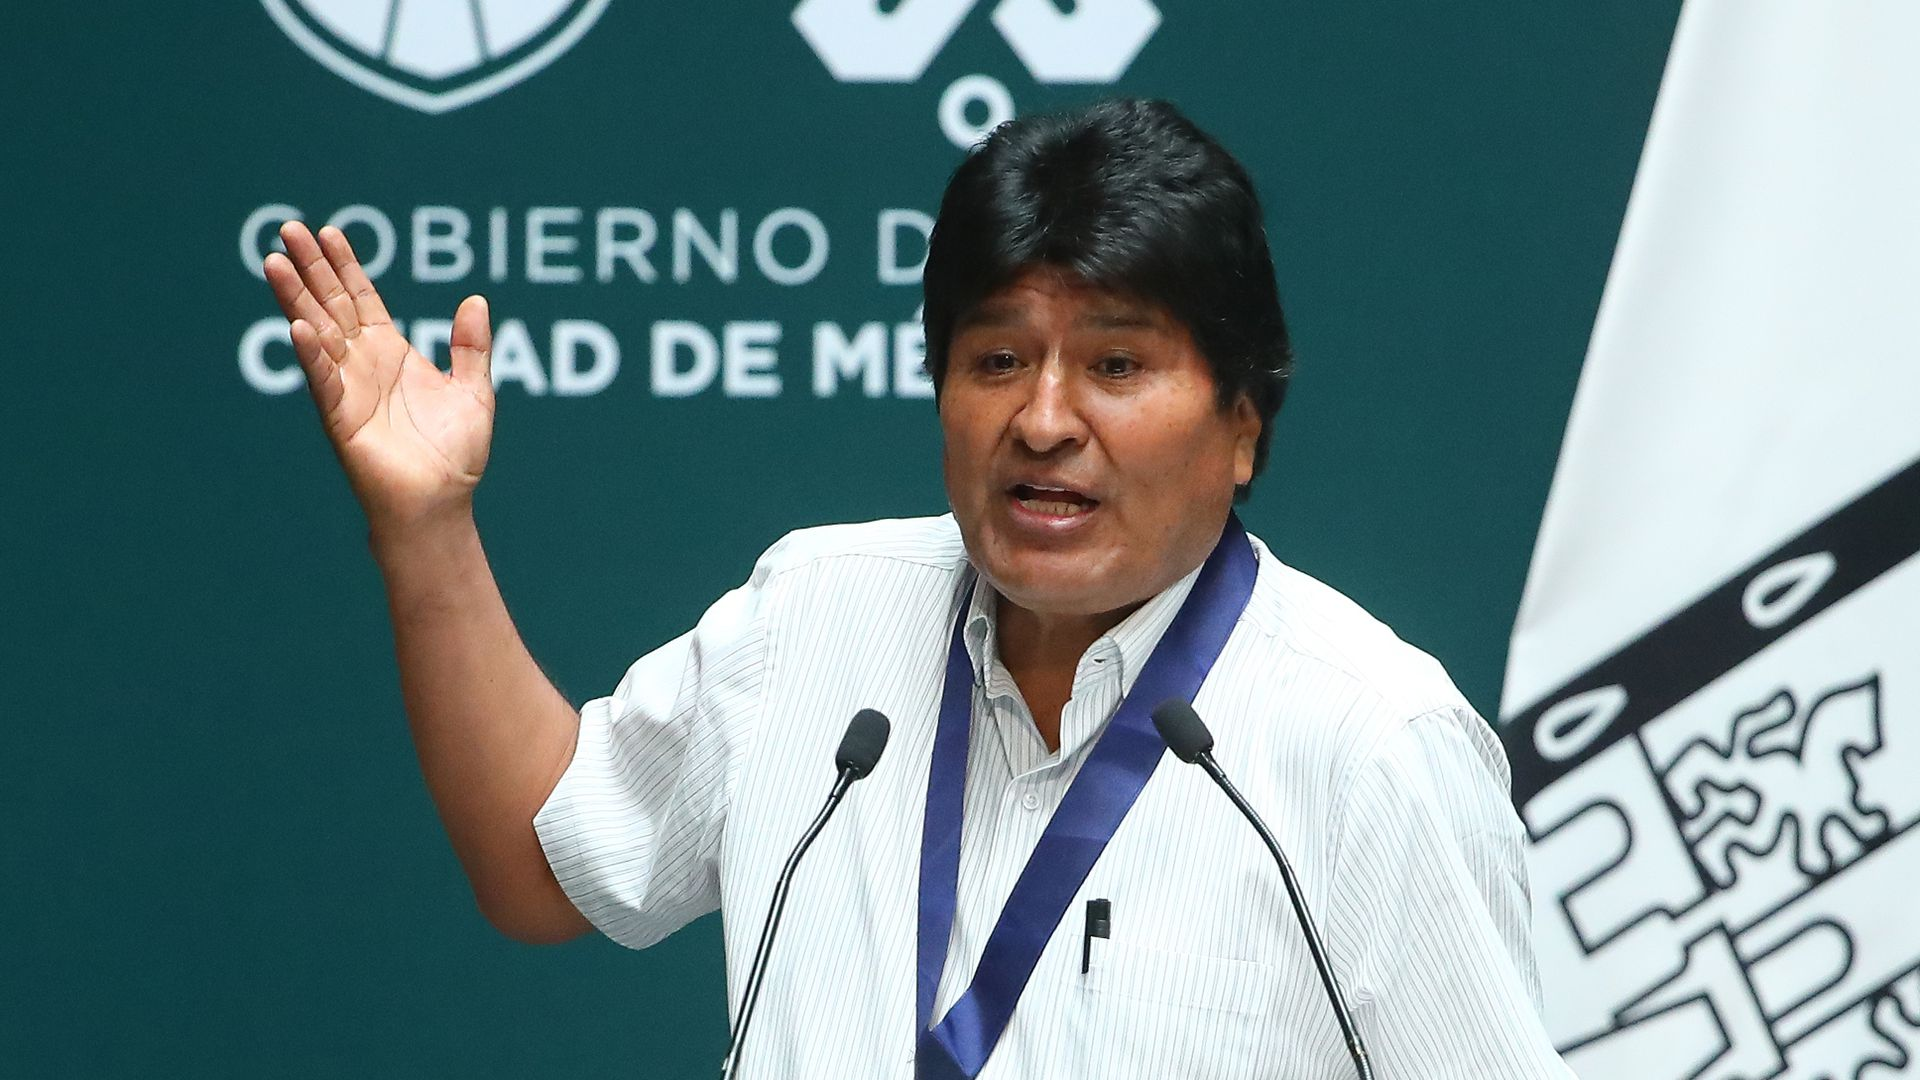 Former president of Bolivia Evo Morales speaks during an event honoring him at City Hall on November 13, 2019 in Mexico City, Mexico.